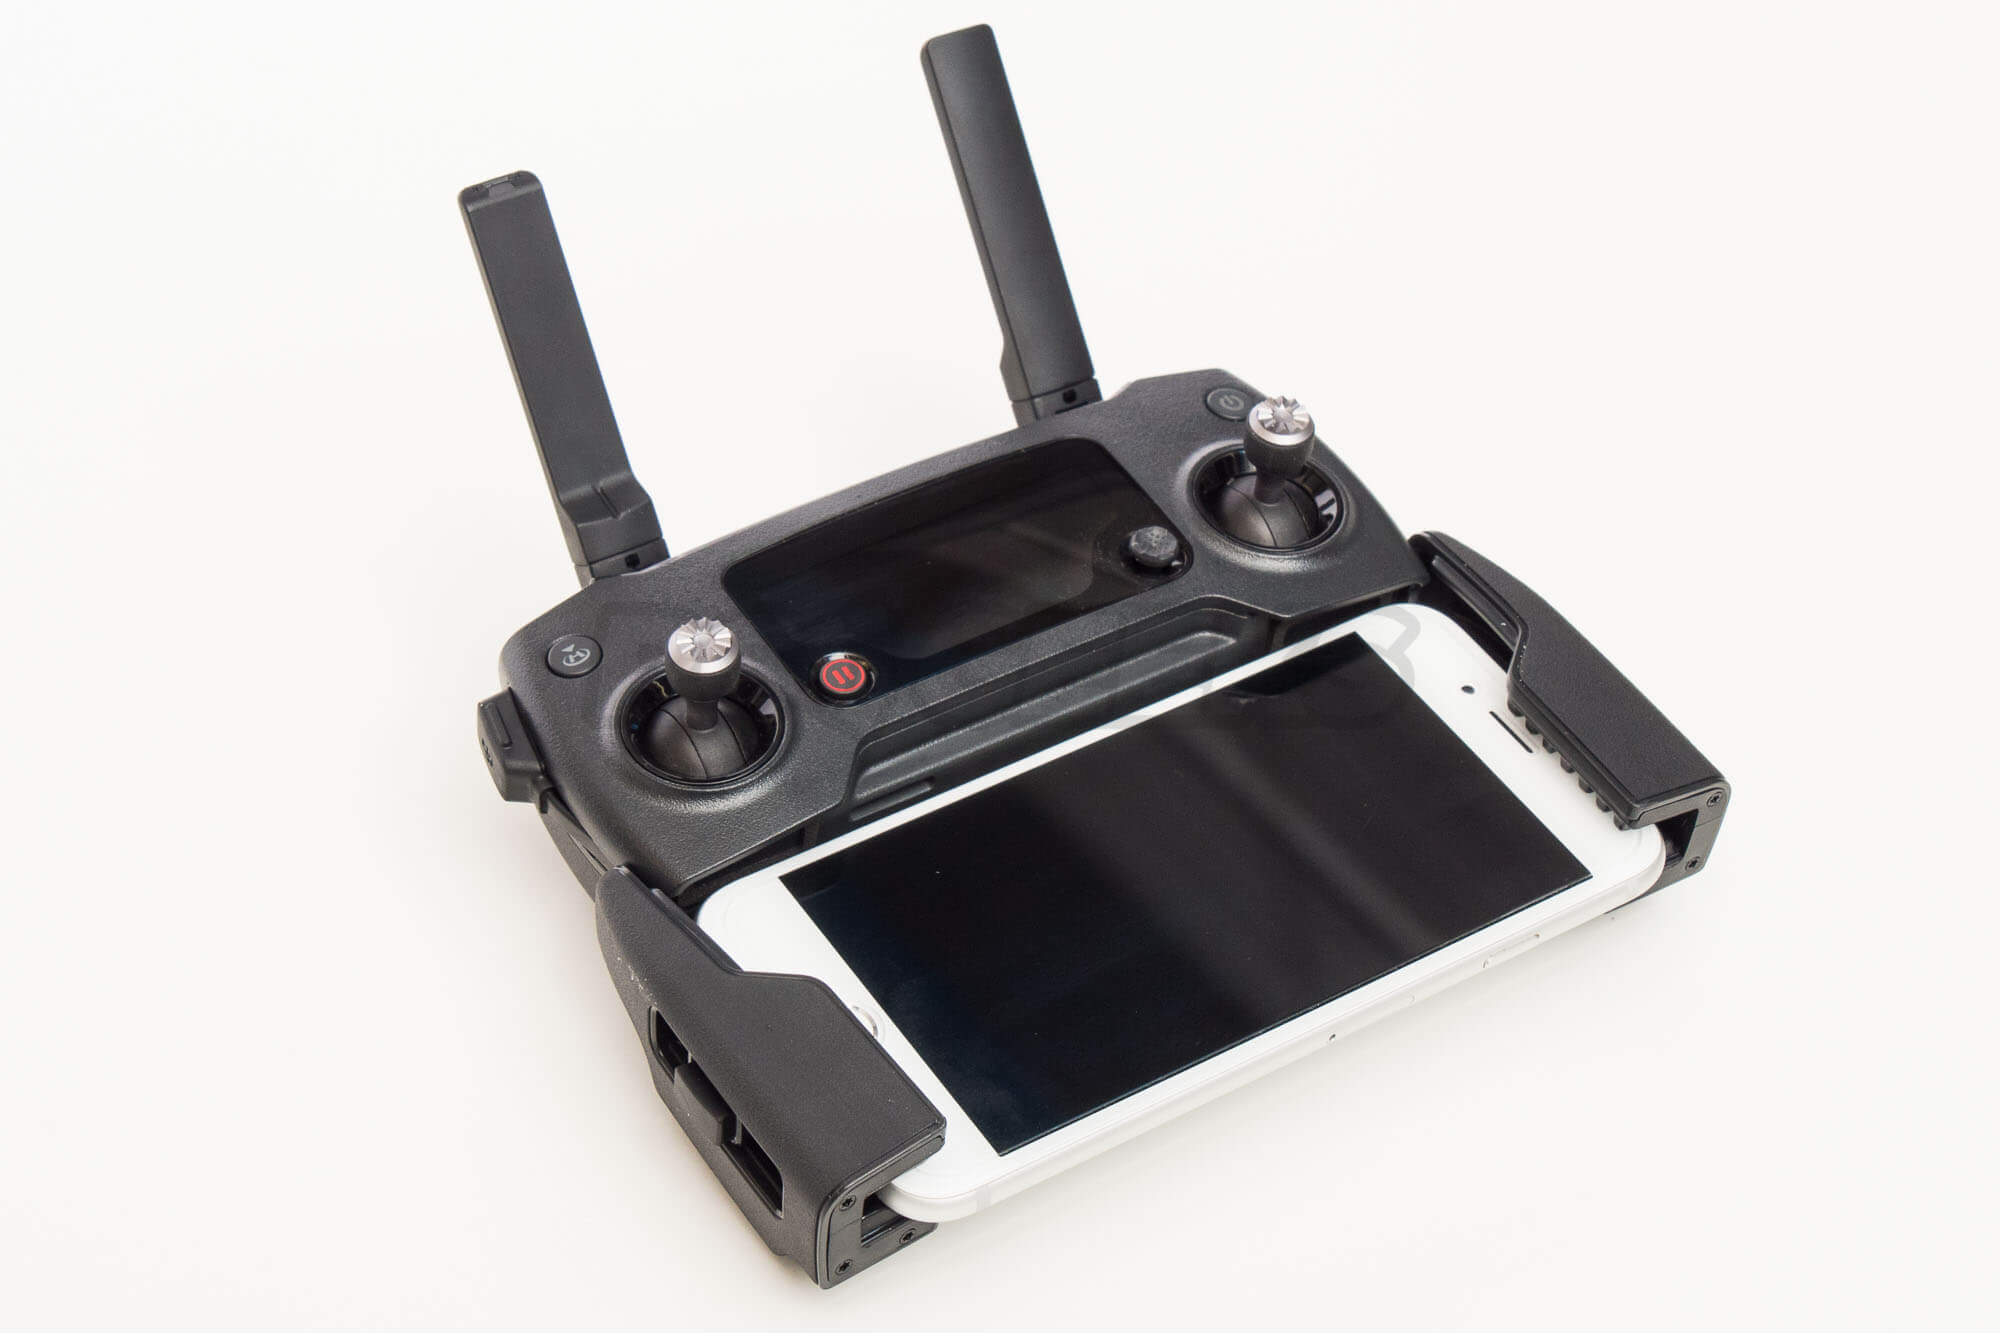 DJI-Mavic-pro-remote-controller-with-iphone